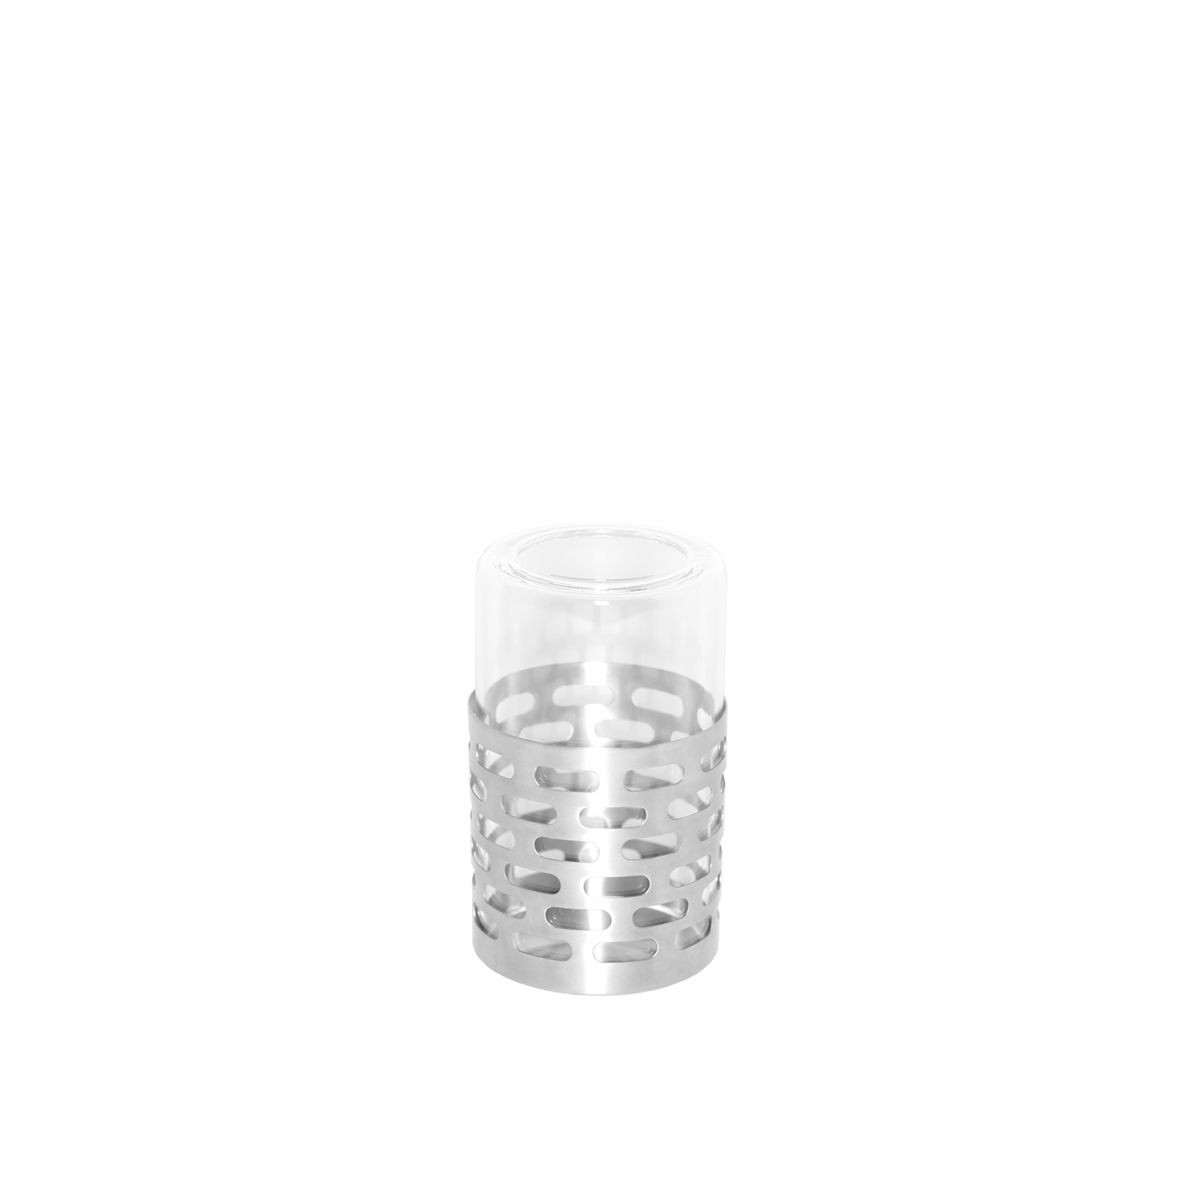 "Service Ideas SB-71 SteelForme Candle Holder with Removable Glass, 3-1/2"" Dia. x 6"" H"